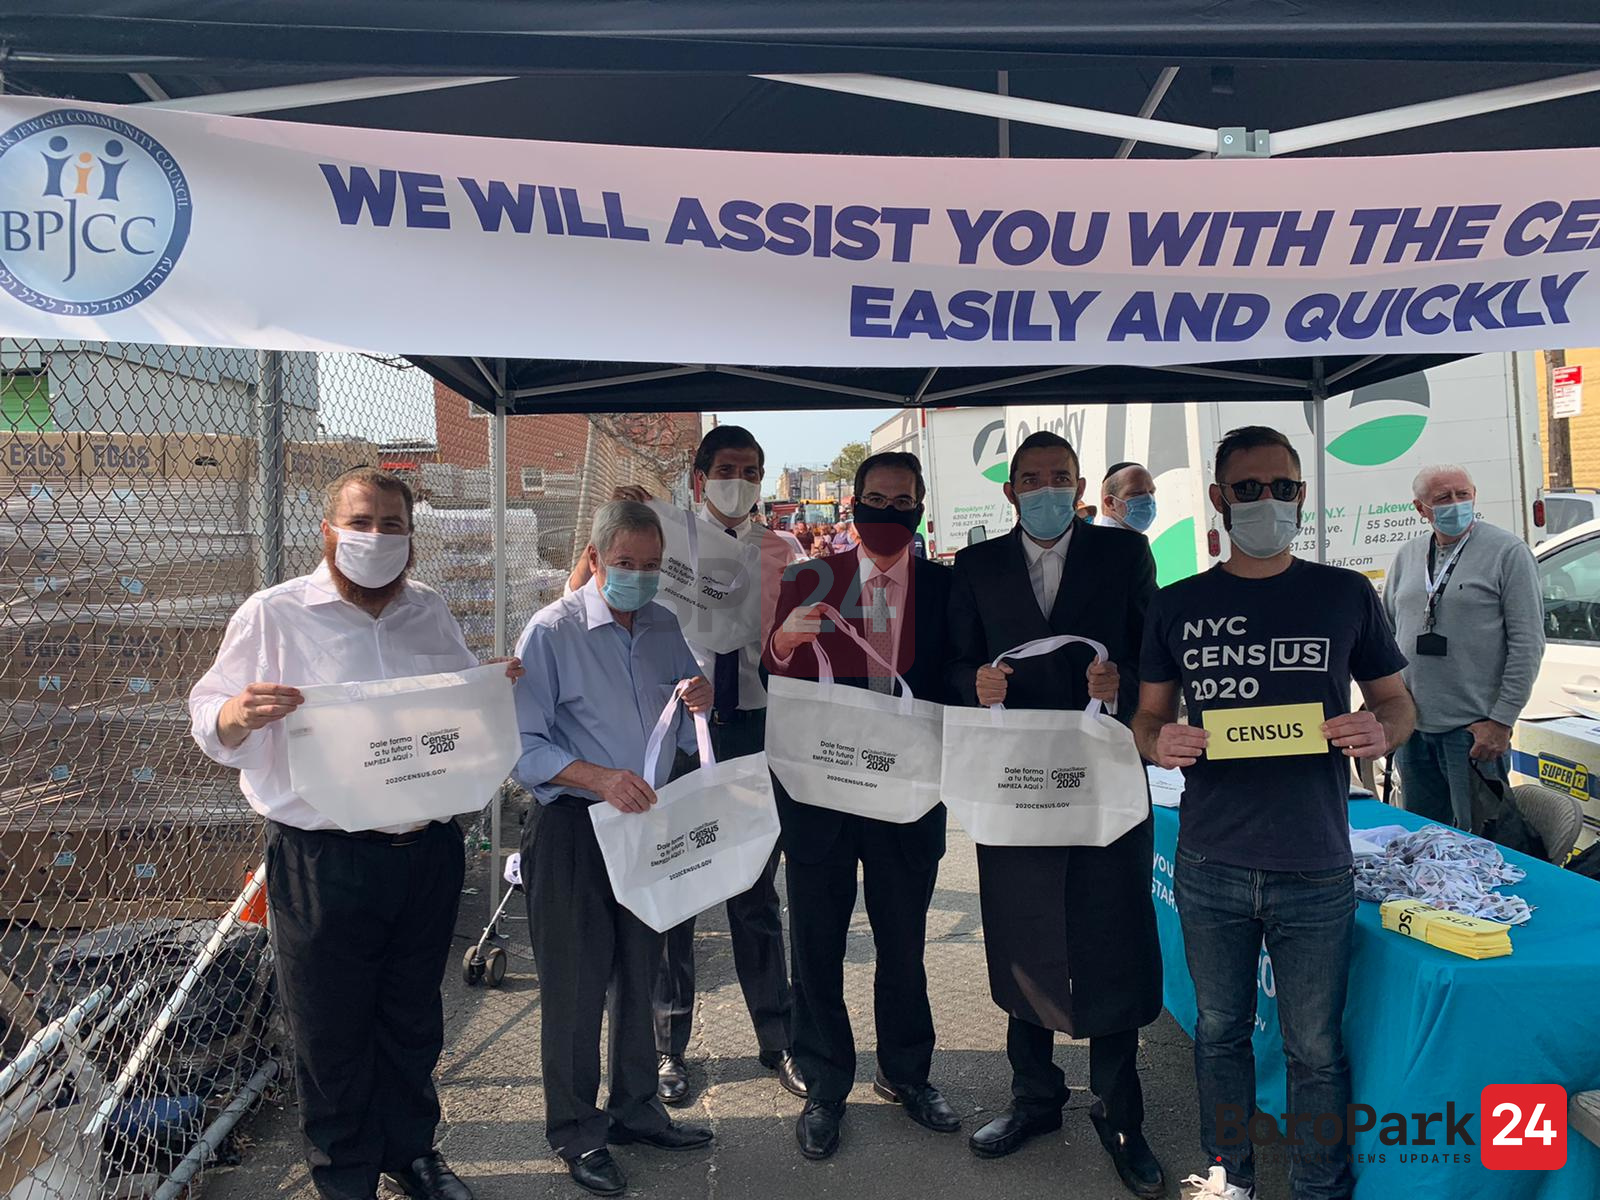 Boro Park JCC, in partnership with Met Council, Holds Rosh Hashana Food Distribution & Census Drive-Thru Event